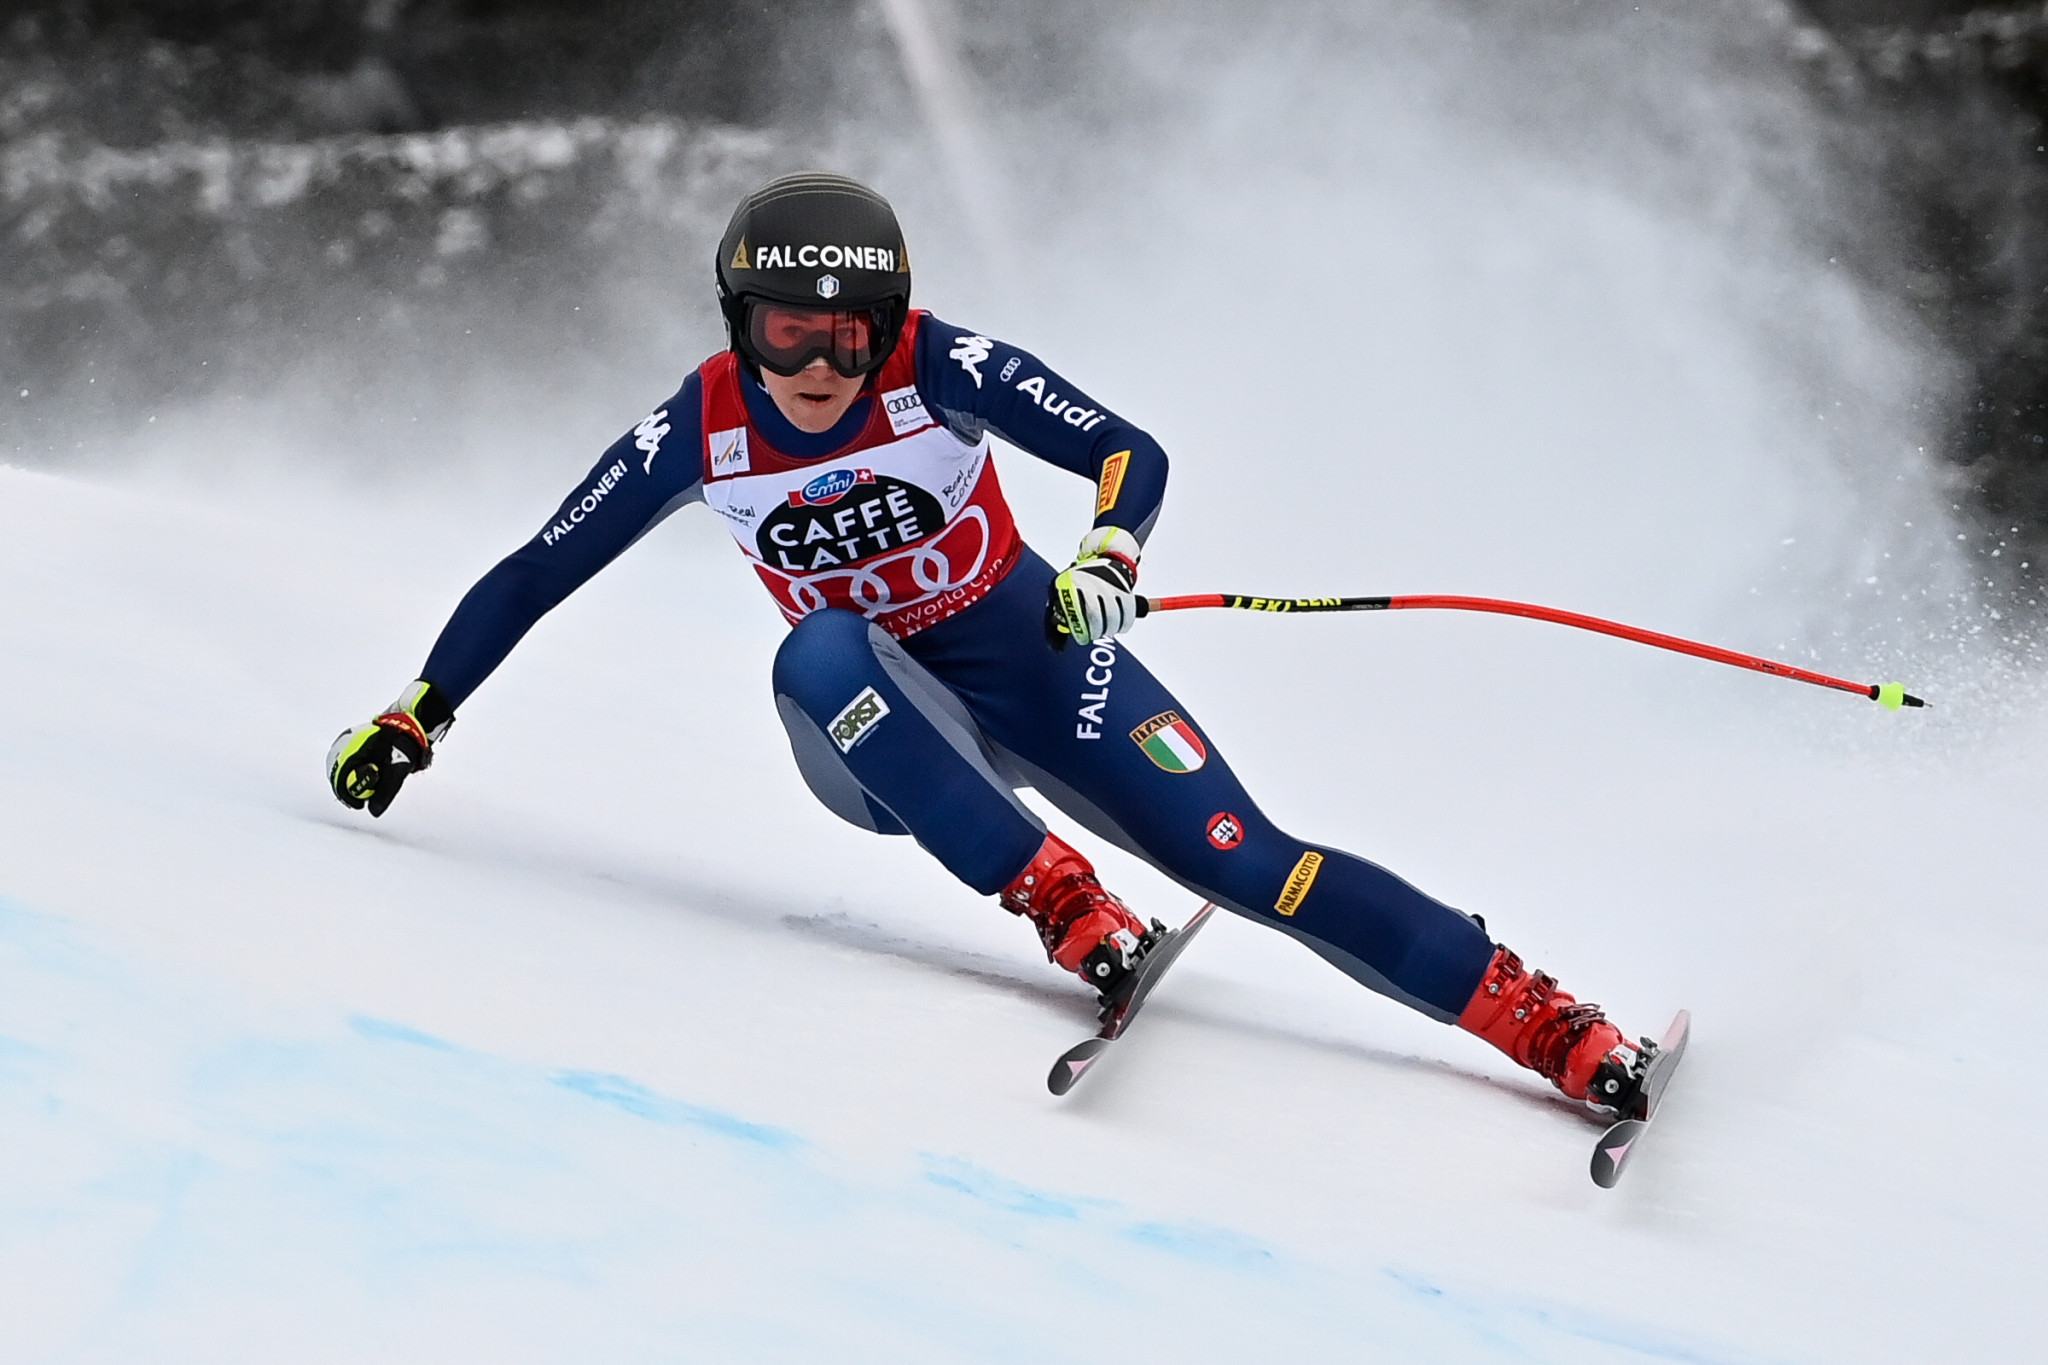 Downhill star Goggia ruled out of Alpine Ski World Championships through injury